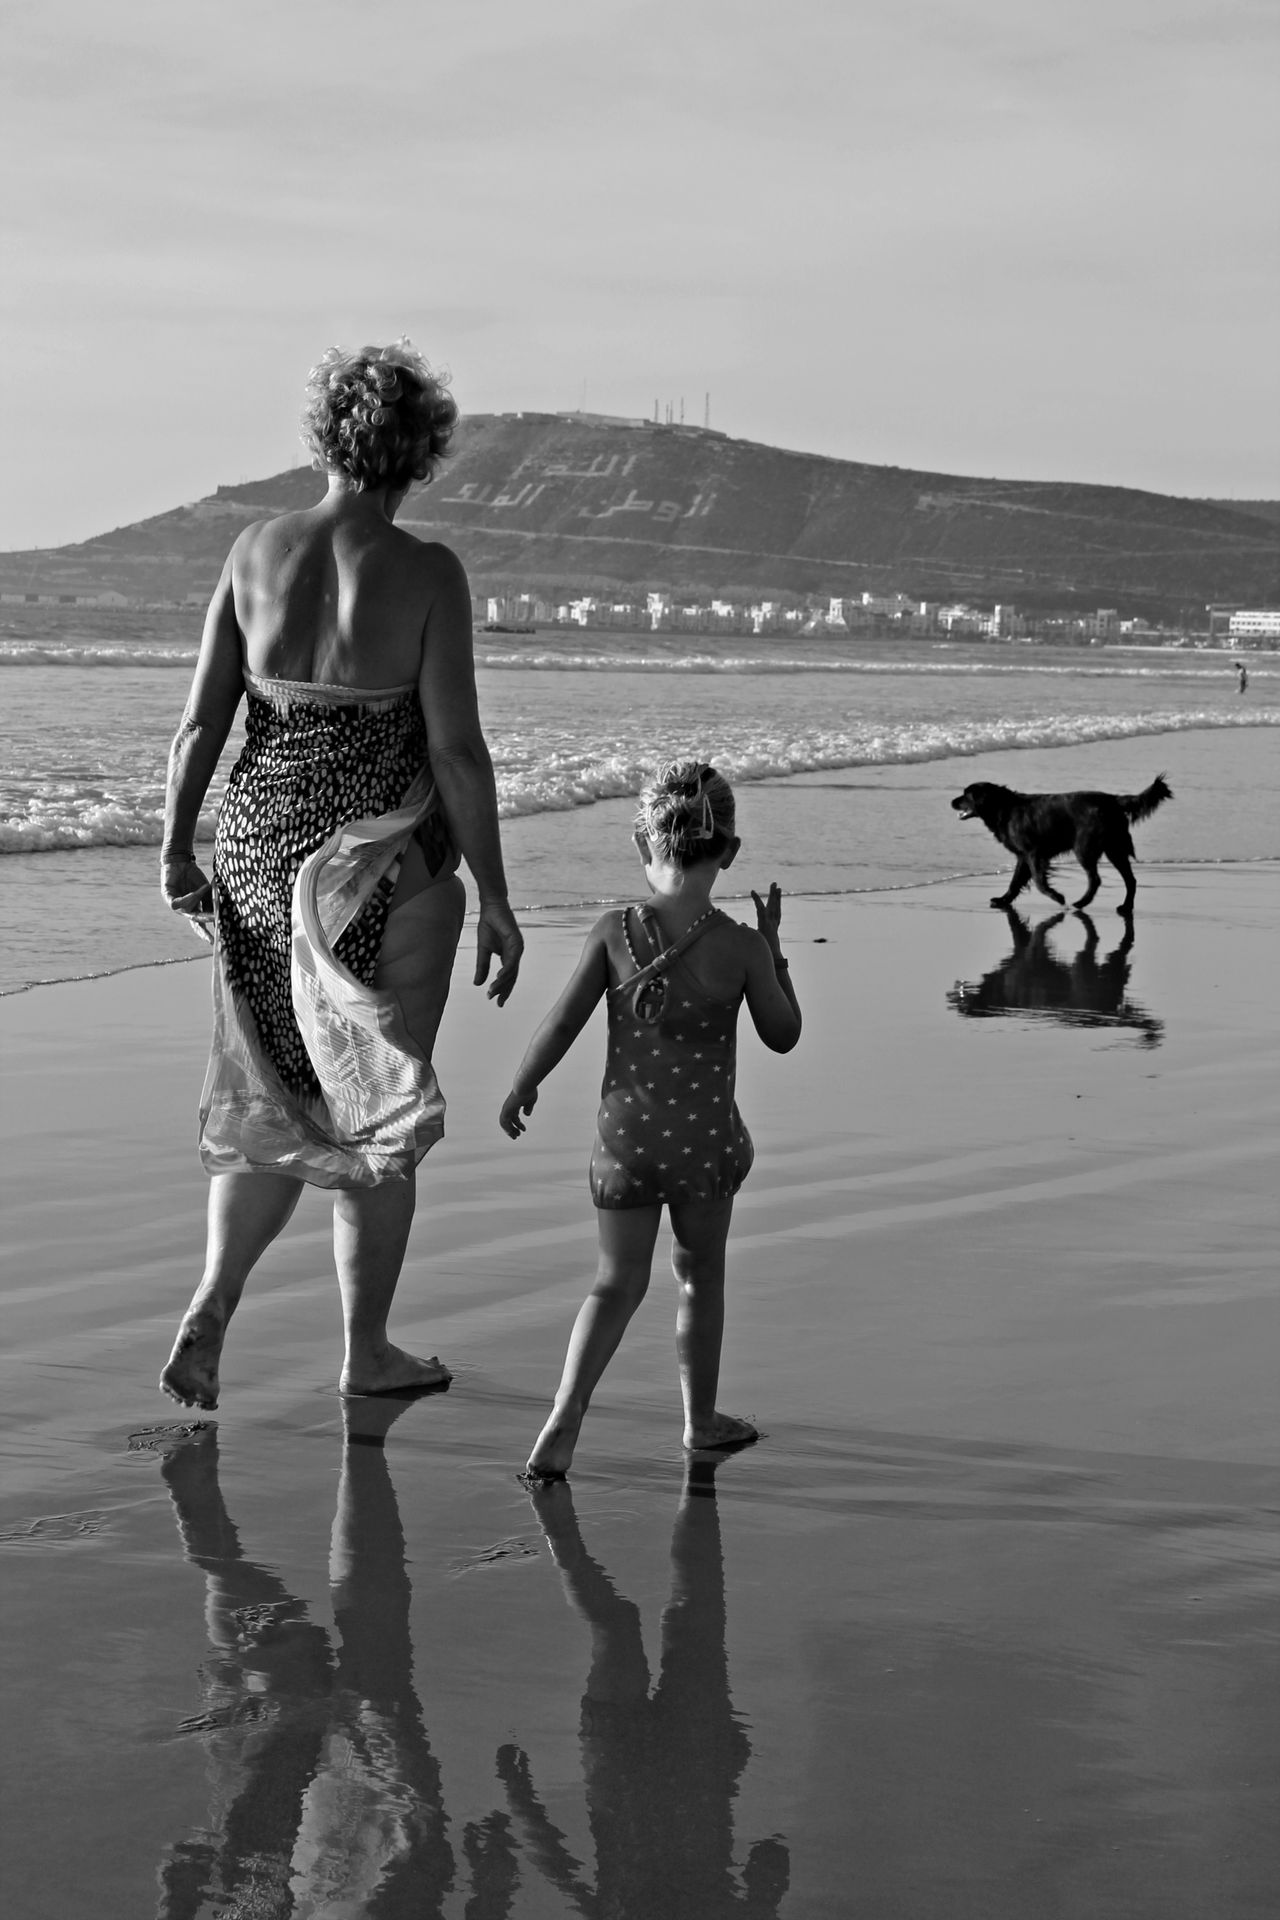 Mila and grandma... Quality time Agadir Morocco Blackandwhite Photography Casual Clothing Dog On Beach Escapism Friendship Front View Full Length Fun Granddaughter Grandmother Leisure Activity Lifestyles Morocco Portrait Real People Reflection Standing Three Quarter Length Togetherness Weekend Activities Women Young Adult Young Women